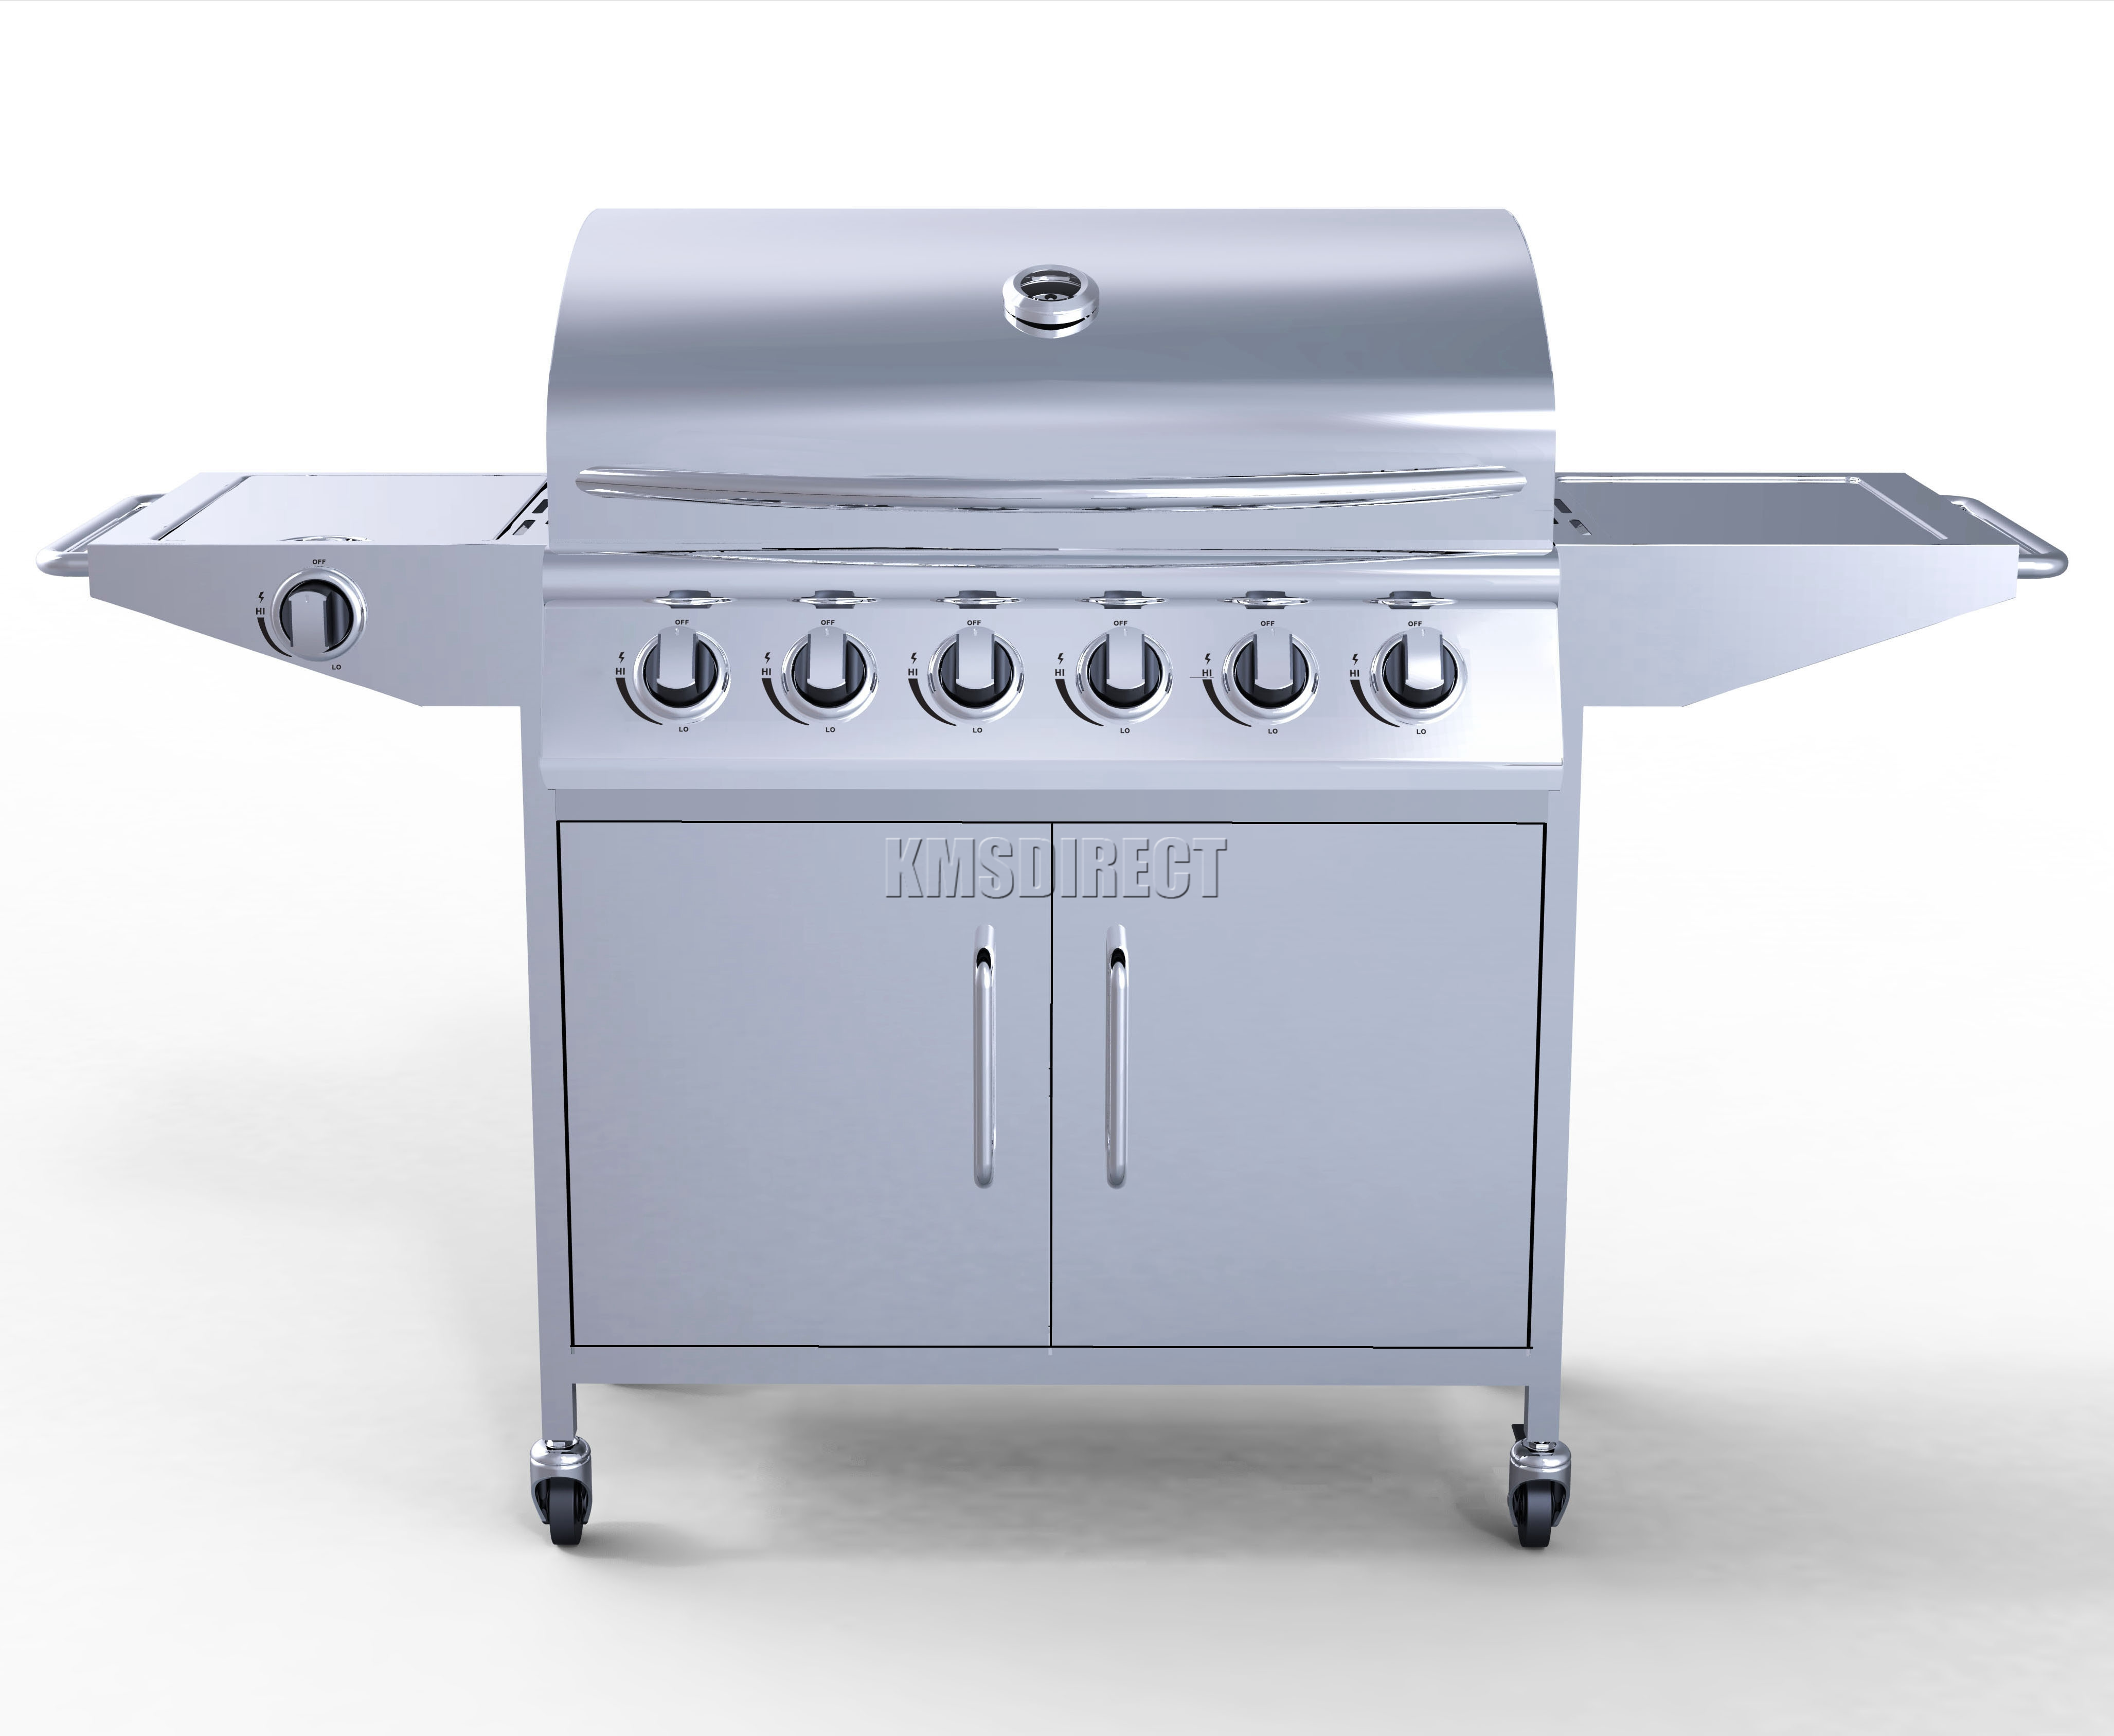 6 burner bbq gas grill stainless steel barbecue 1 side silver outdoor portable ebay. Black Bedroom Furniture Sets. Home Design Ideas